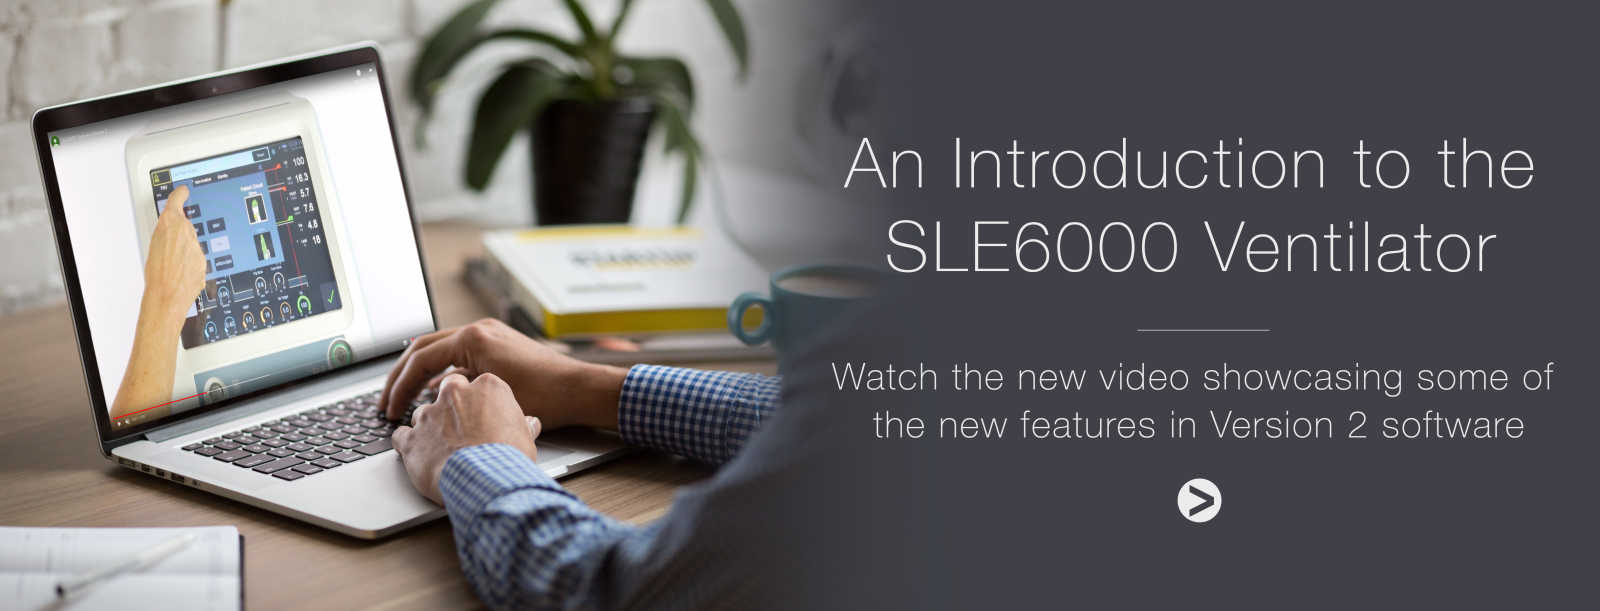 Introducing the SLE6000